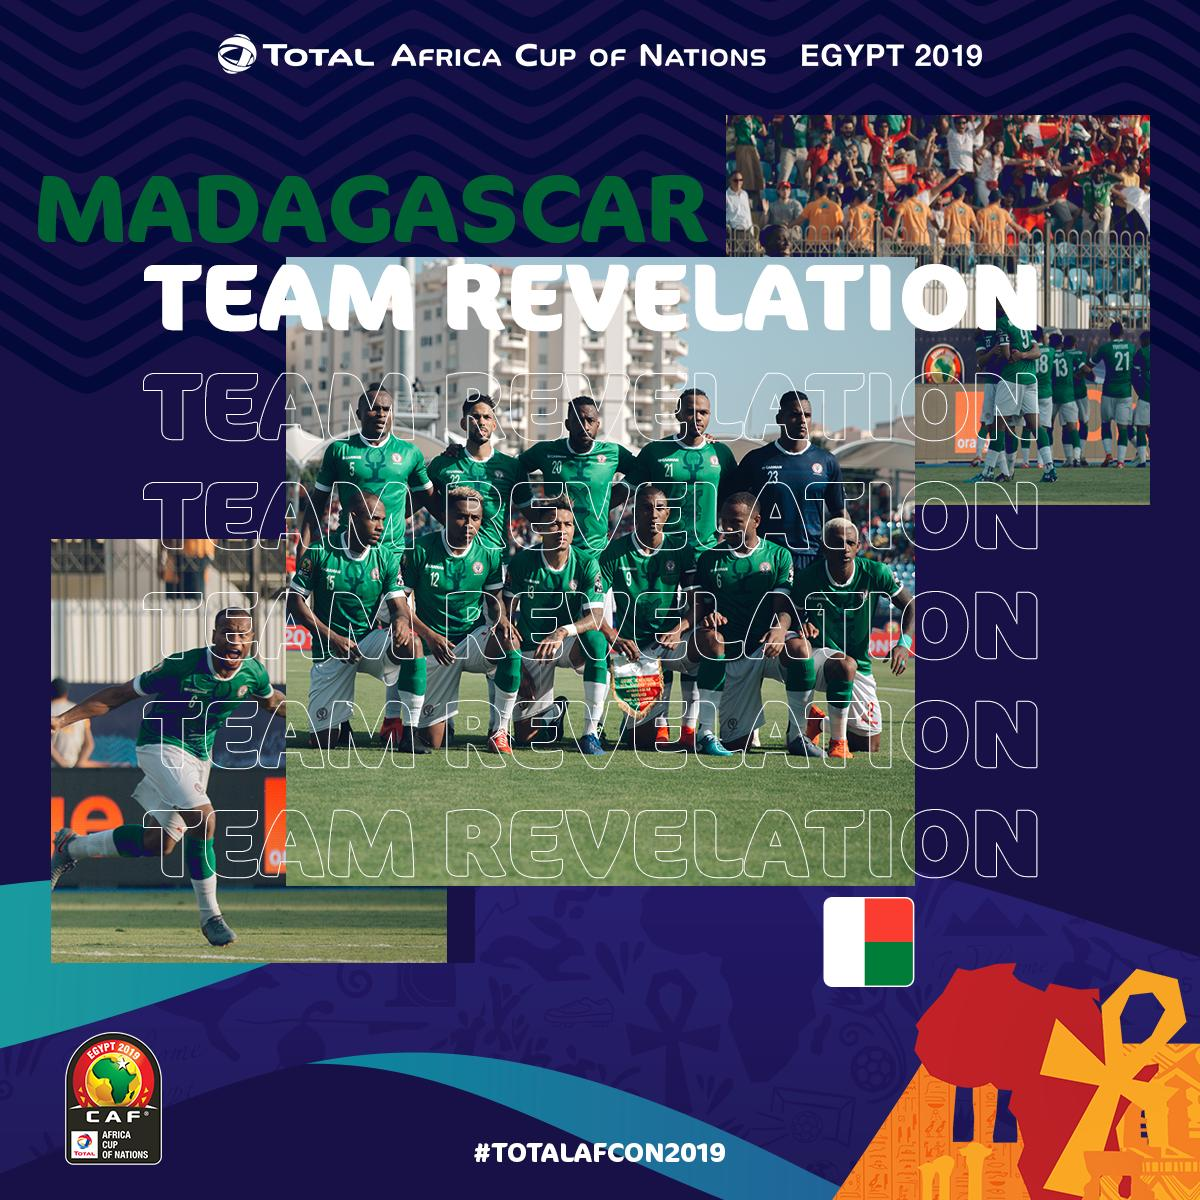 A team that definitely exceeded our expectations  #ALEFABAREA  #TotalAFCON2019<br>http://pic.twitter.com/5b01IPQu7O